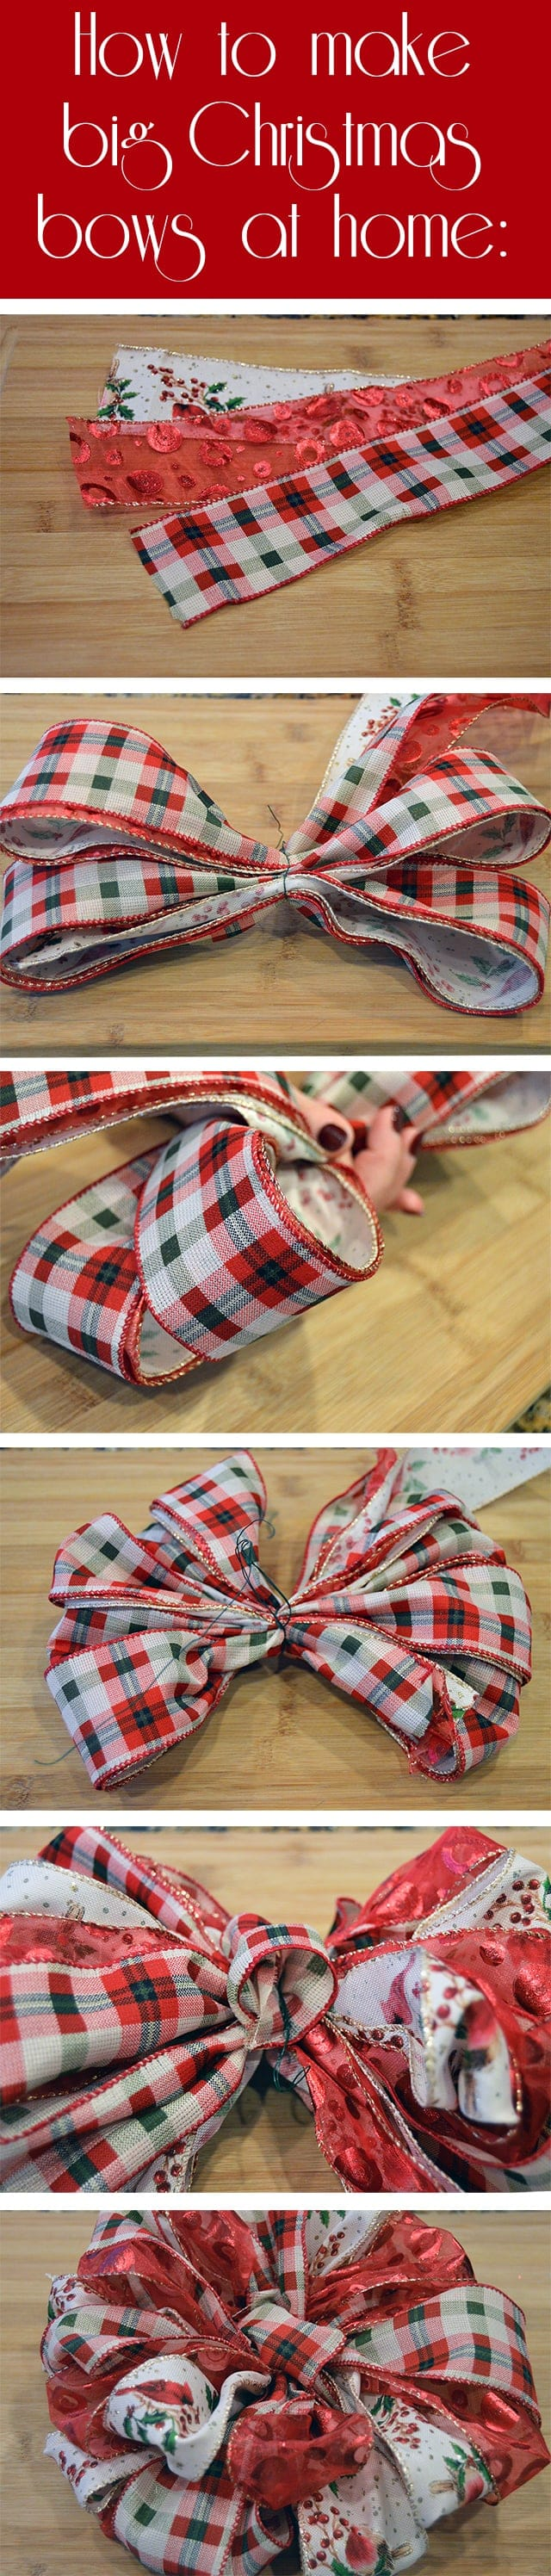 How to make big handmade Christmas bows